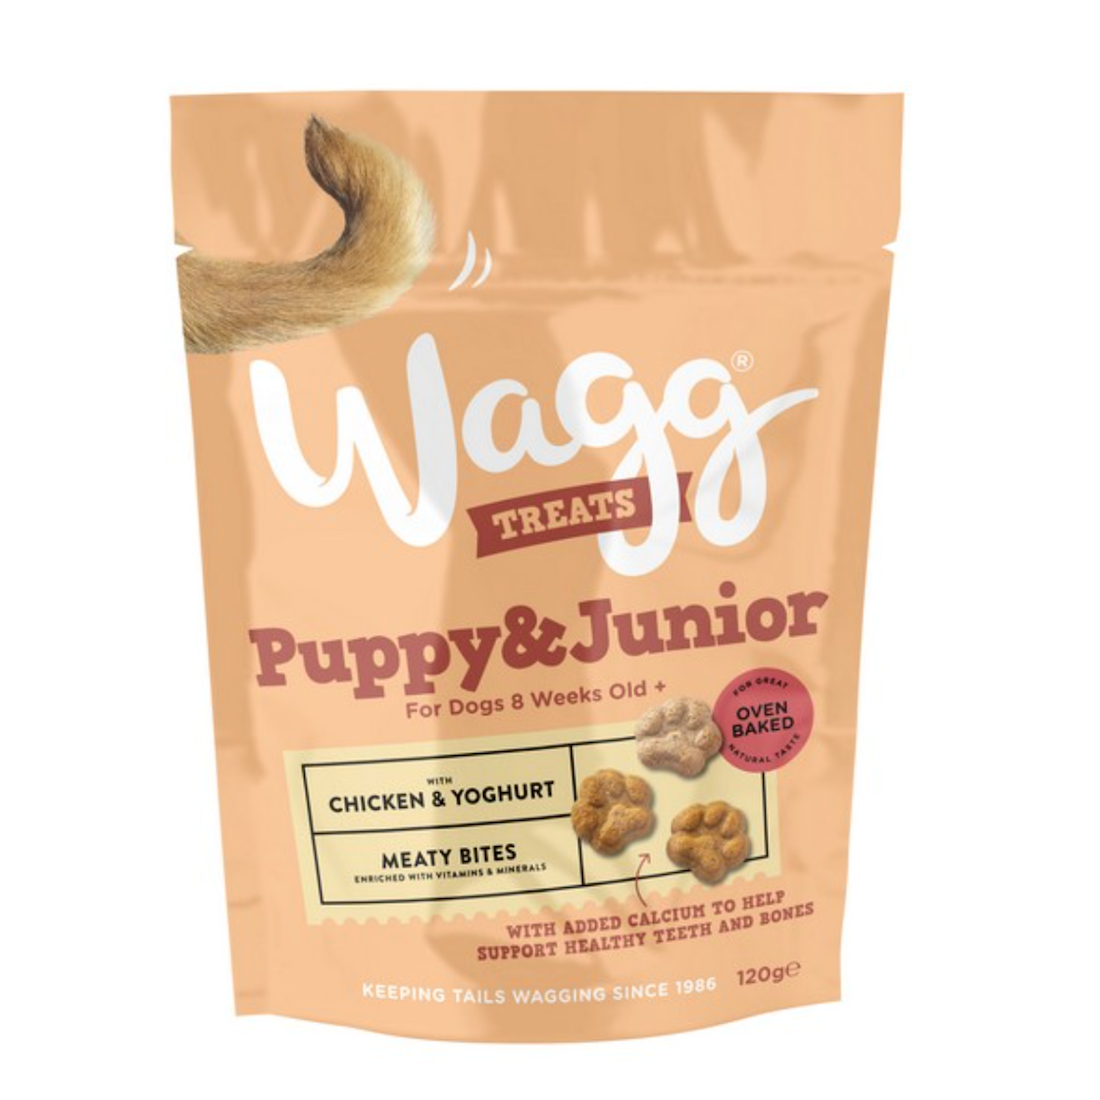 Wagg Dog Treats 125g